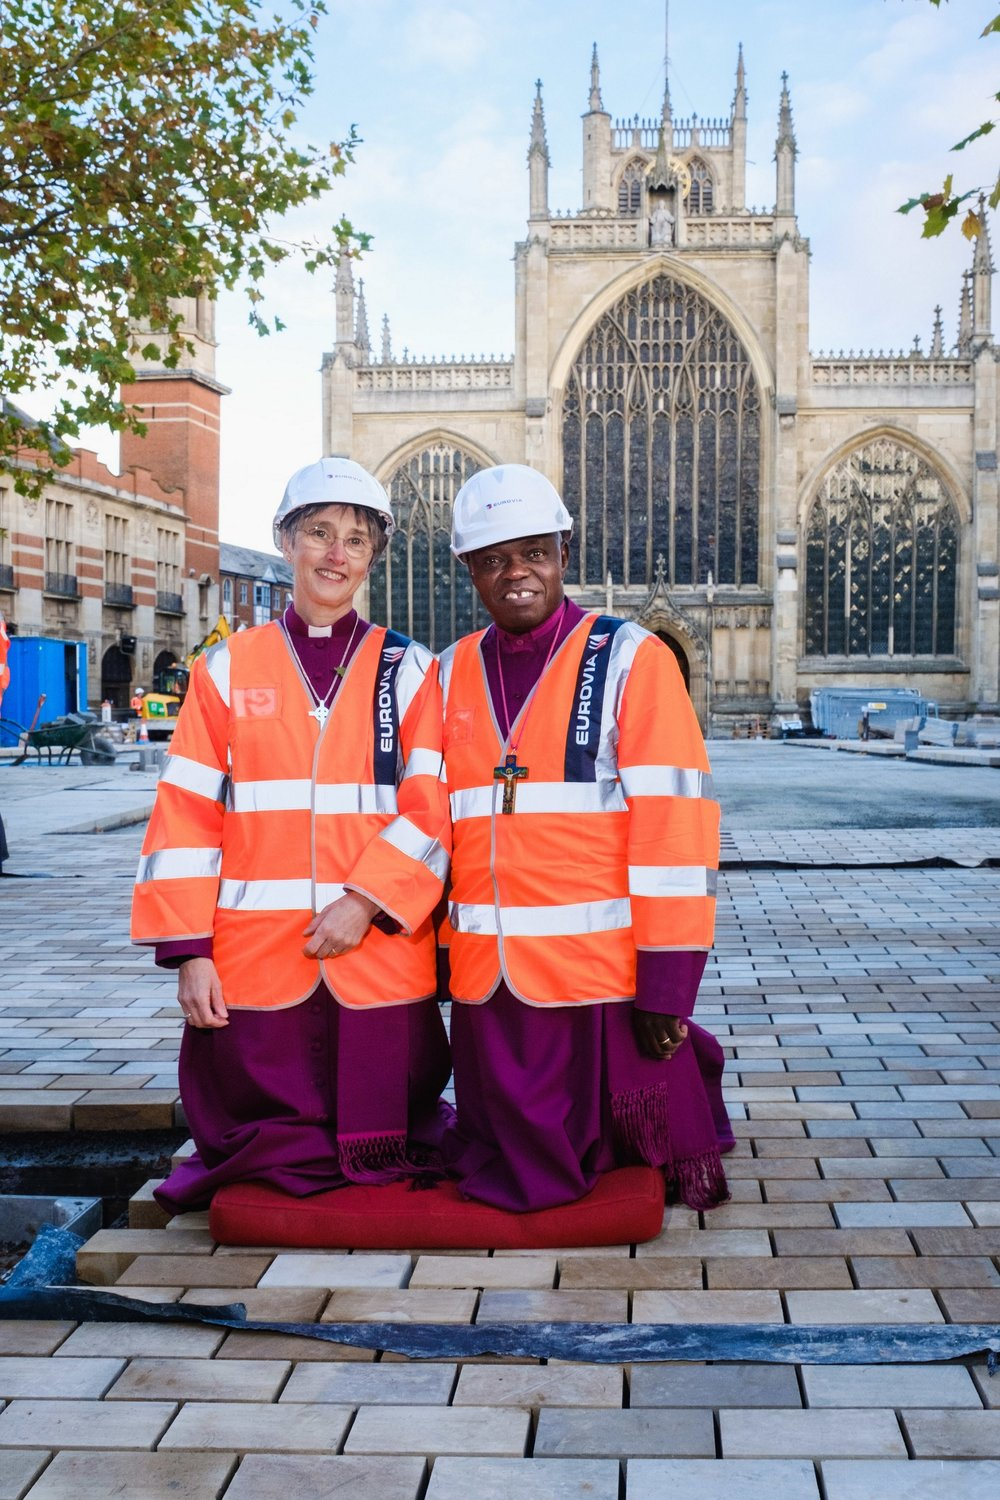 The Archbishop of York and Bishop of Hull came together to make their symbolic contribution to the transformation of Holy Trinity Church.